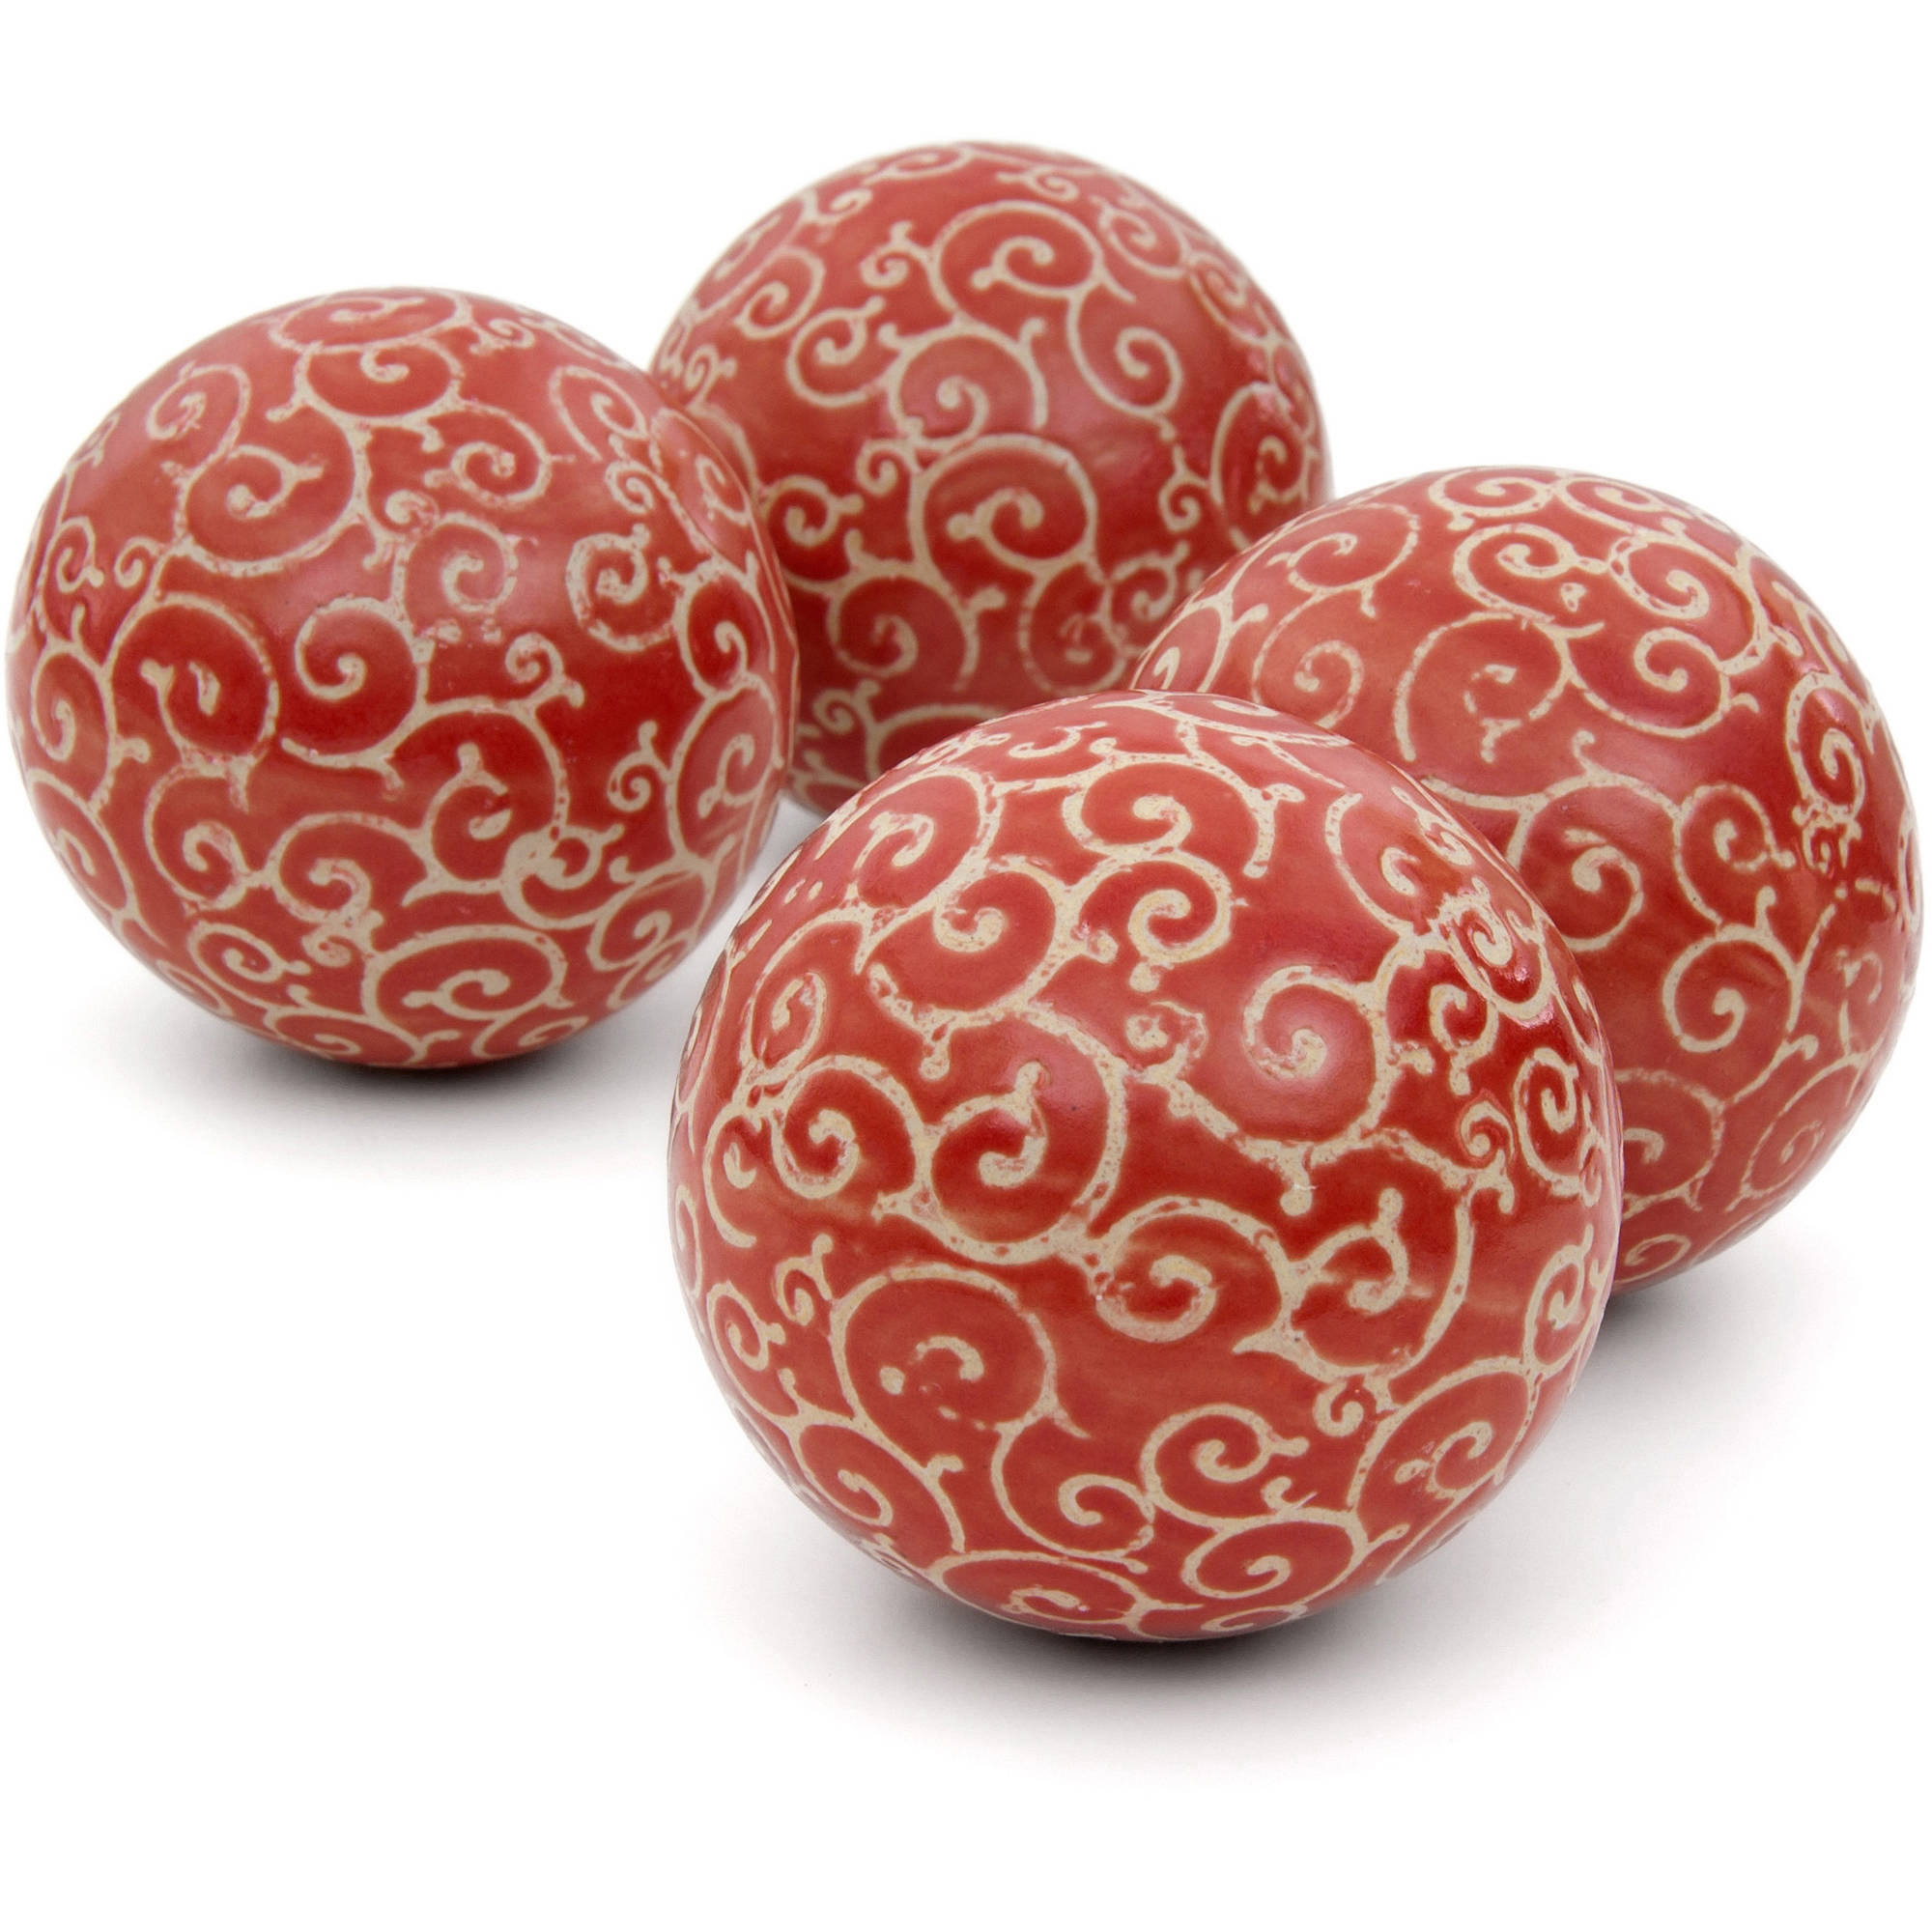 "4"" Red and Beige Vines Porcelain Ball Set"